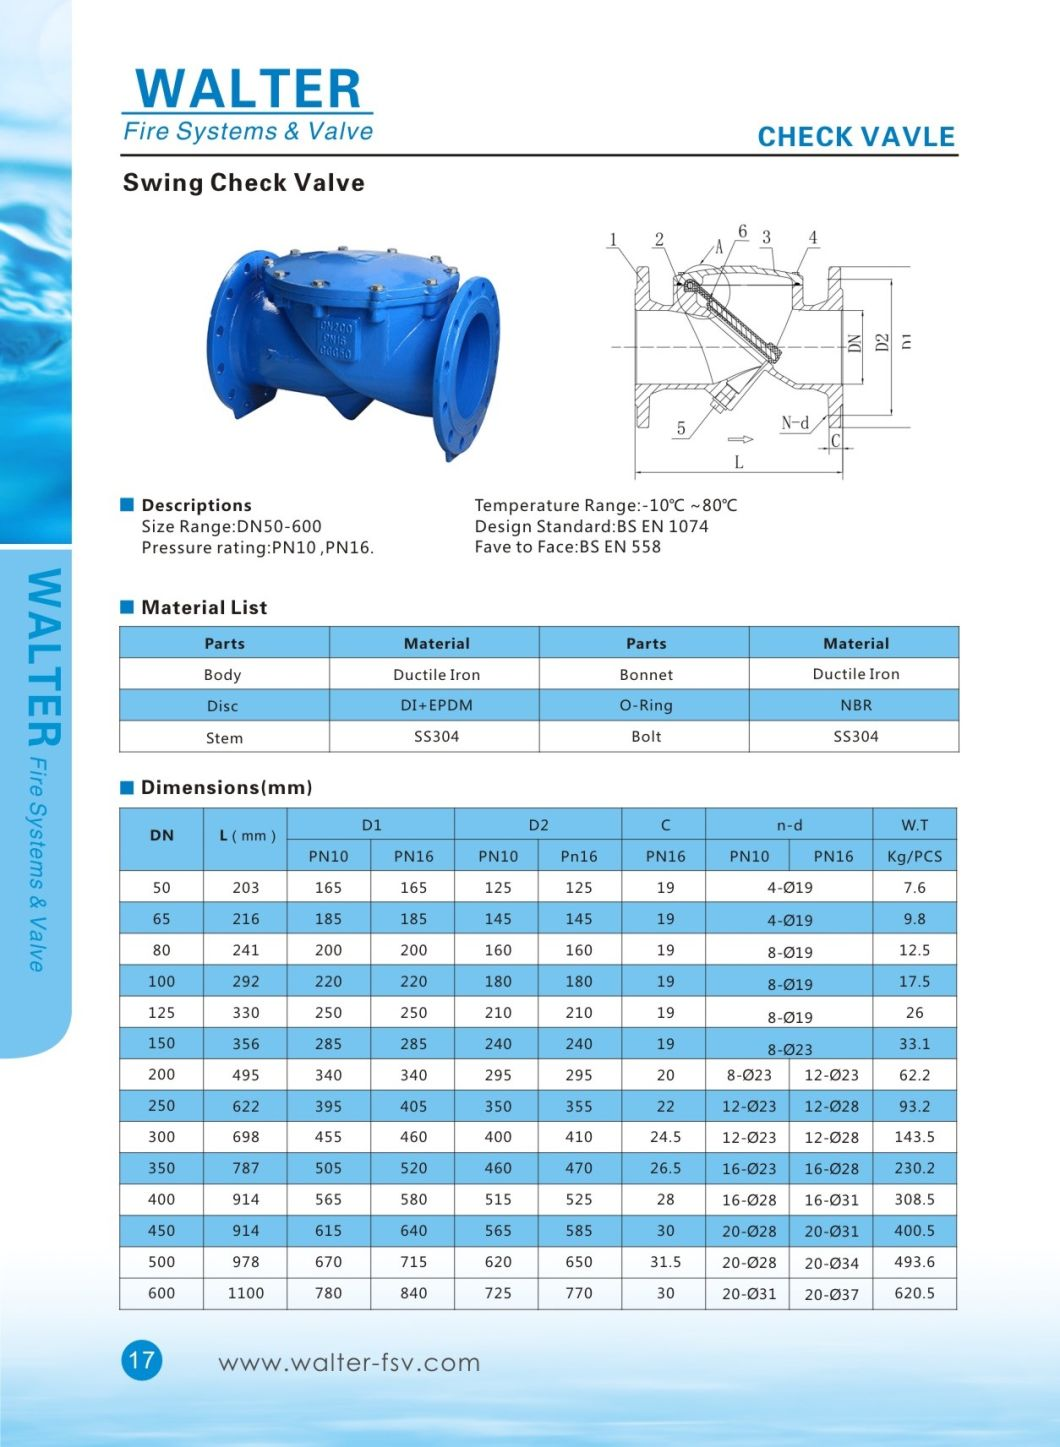 Rubber Flap Swing Check Valve